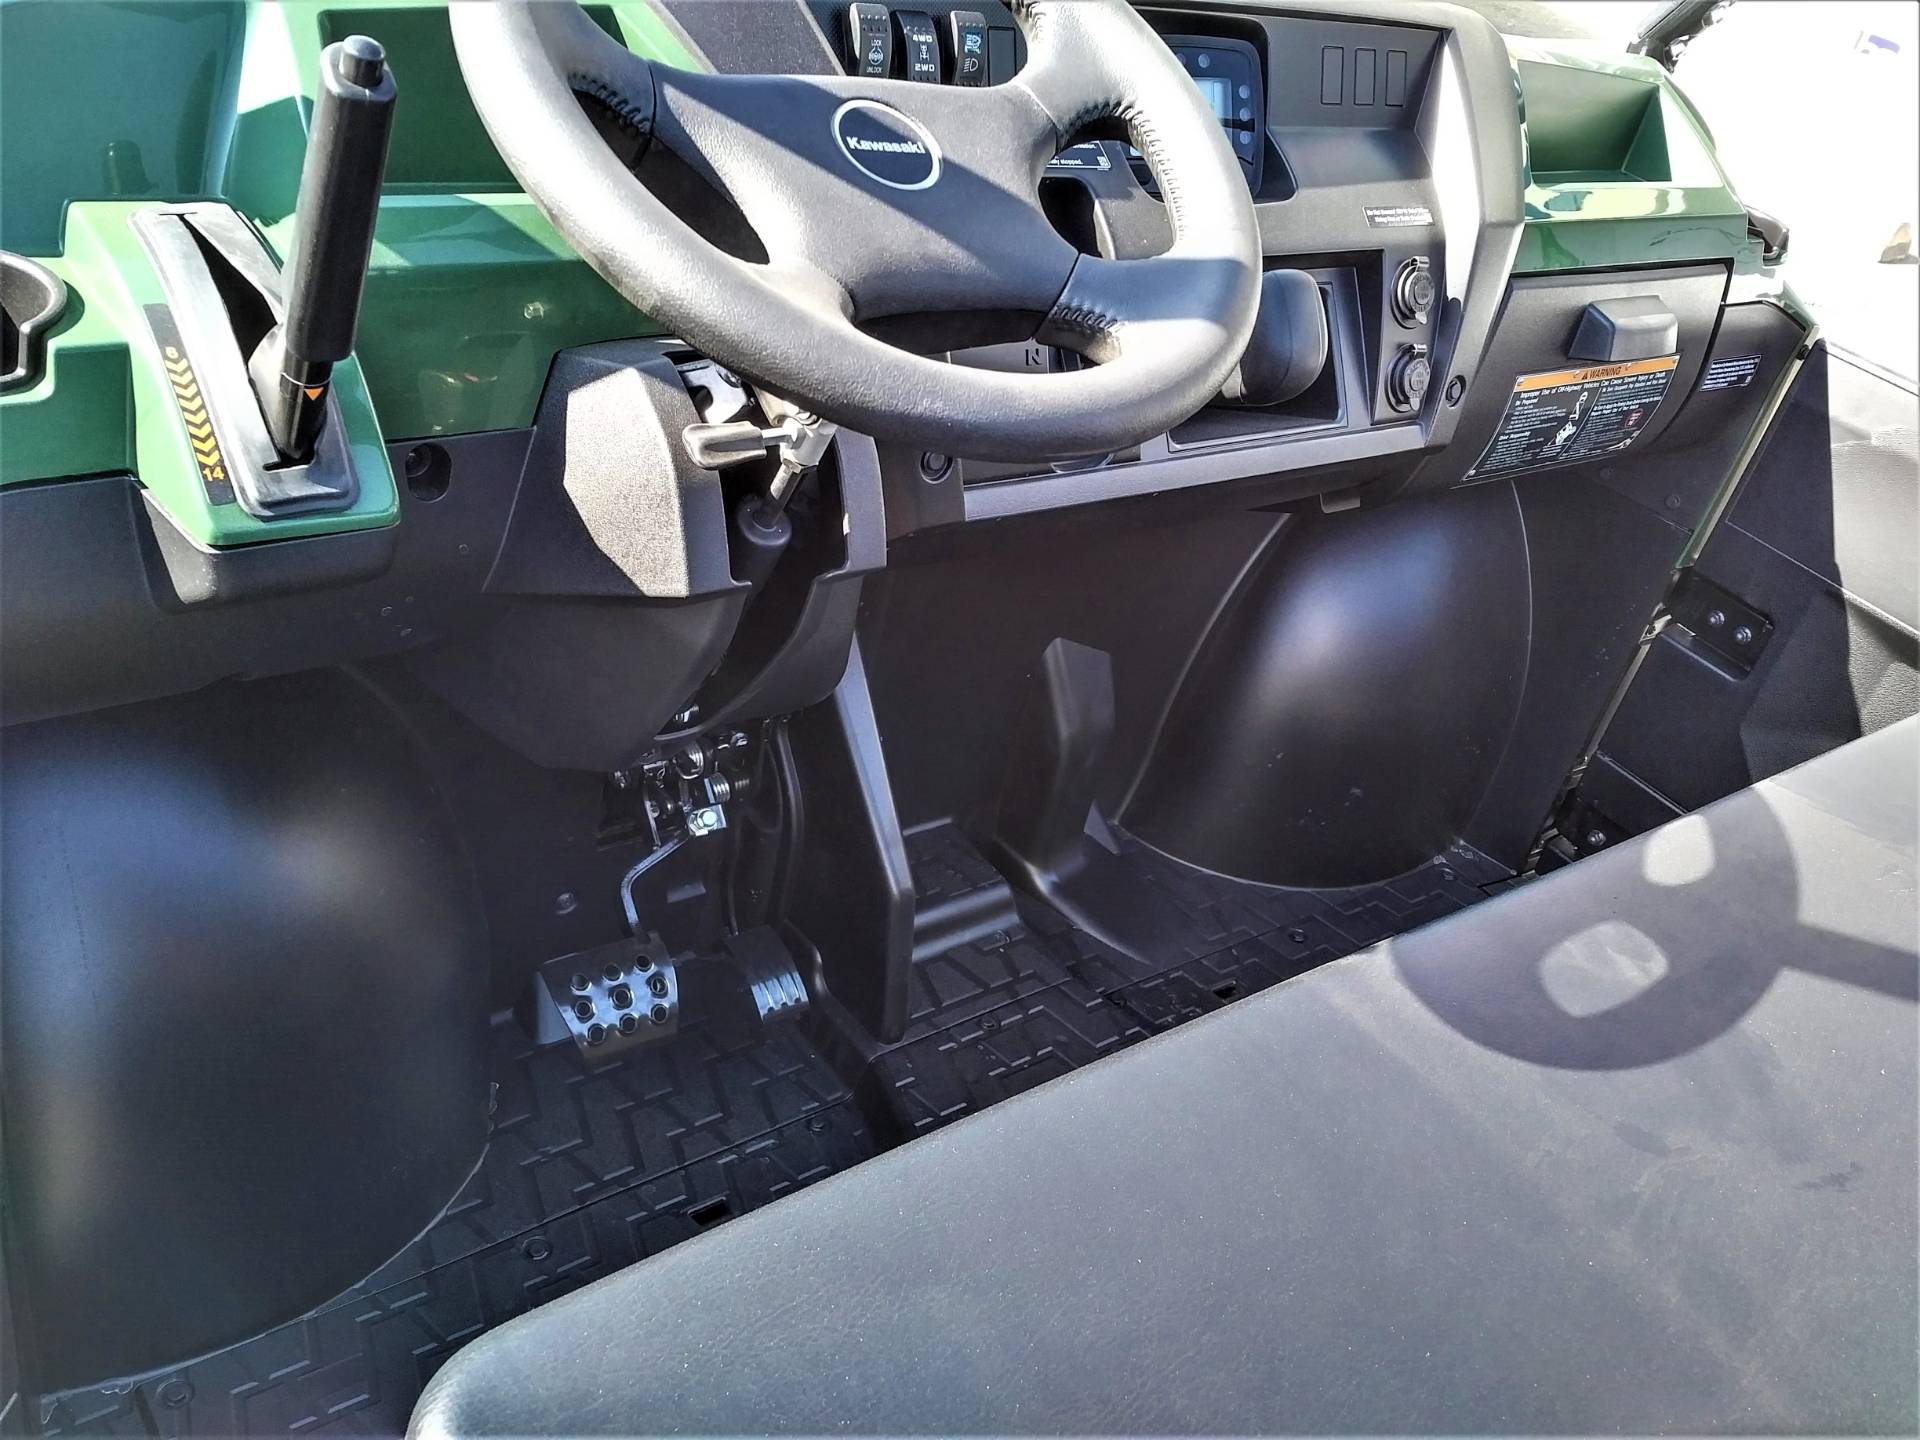 2020 Kawasaki Mule PRO-FXT EPS in Salinas, California - Photo 14